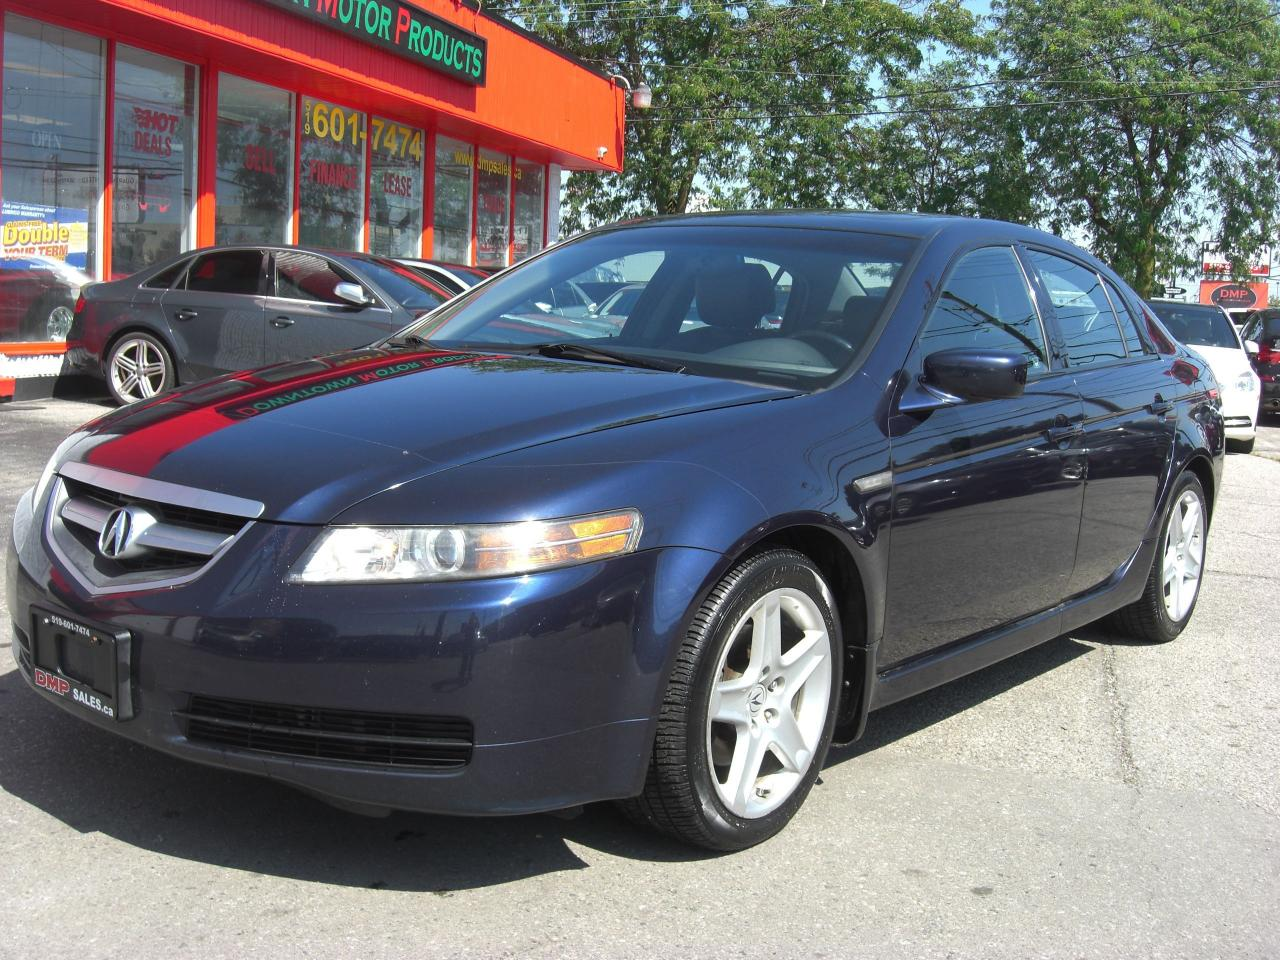 Used Acura TL For Sale In London Ontario Carpagesca - Acura tl 2006 for sale